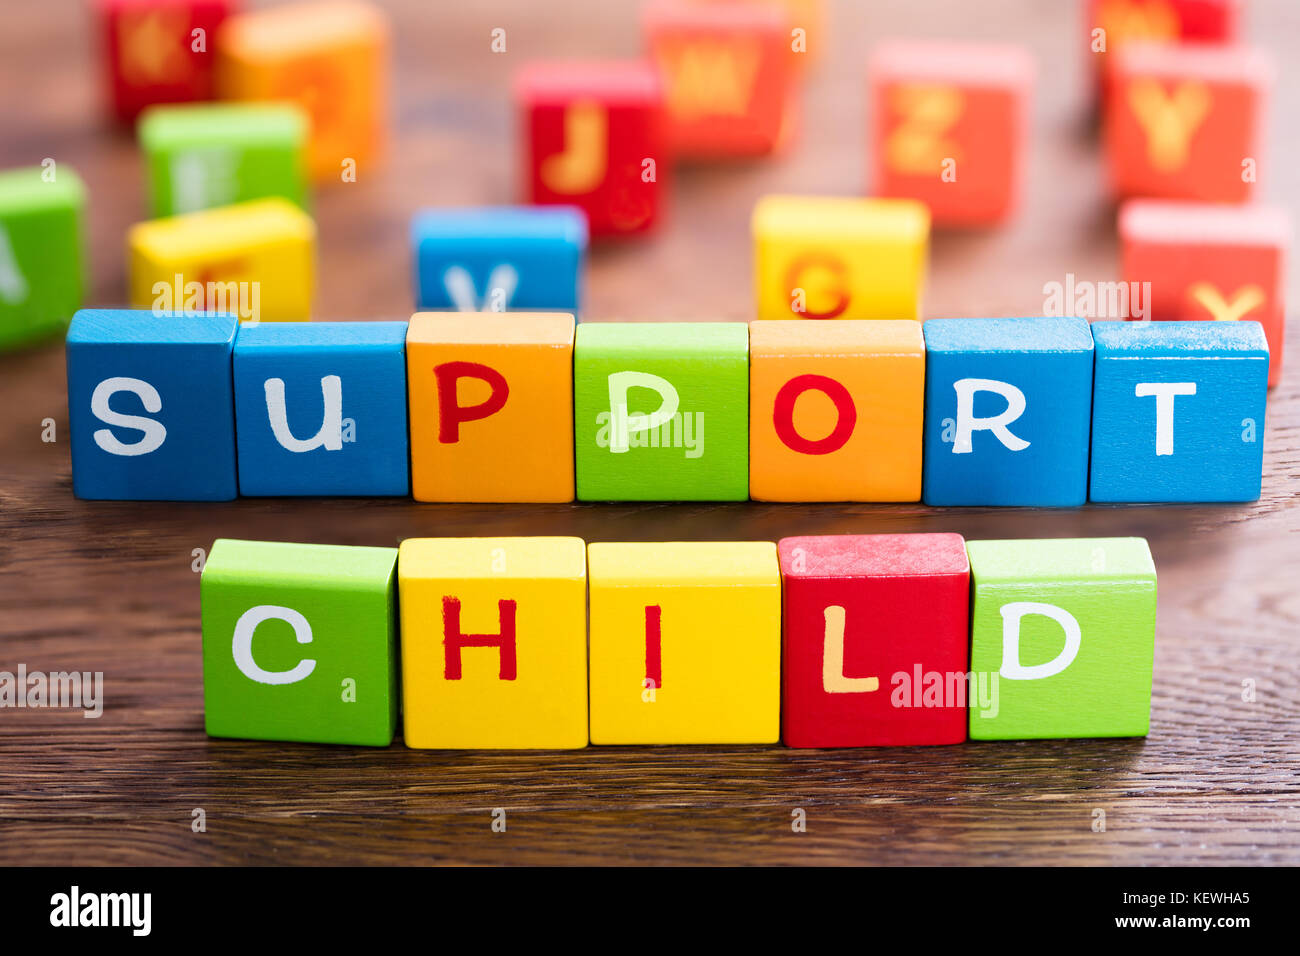 Child Support Concept On Colorful Block At Wooden Desk - Stock Image